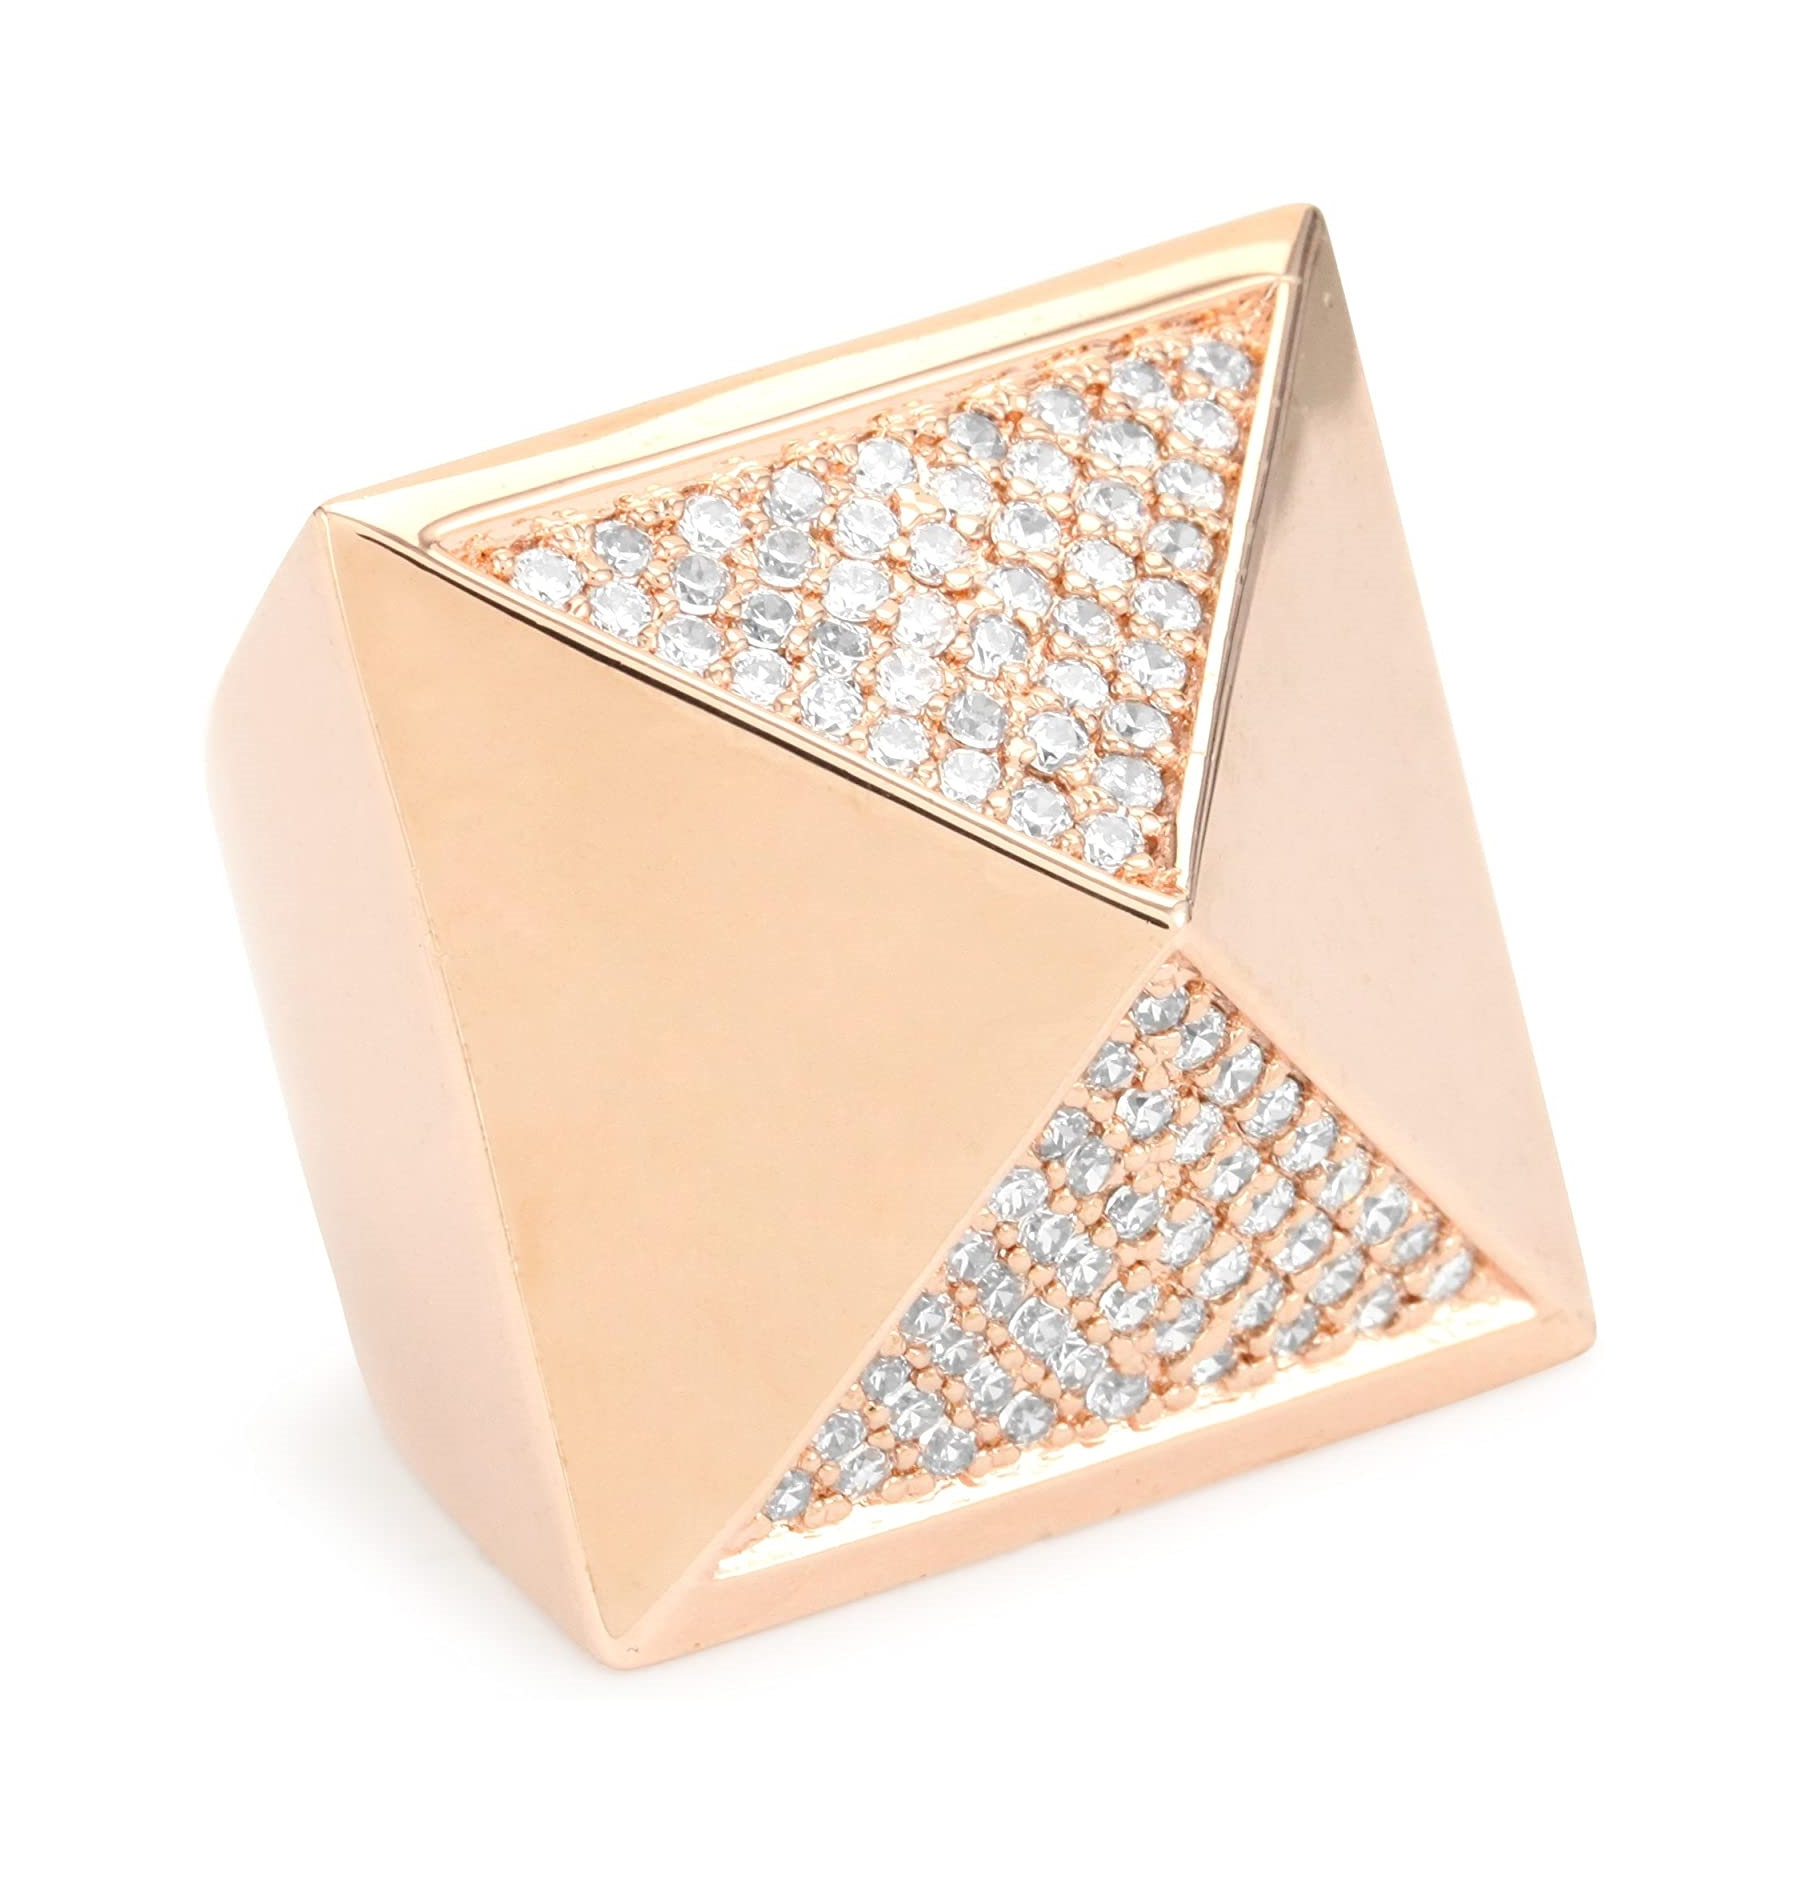 File:Noir - Sided pyramid ring.jpg